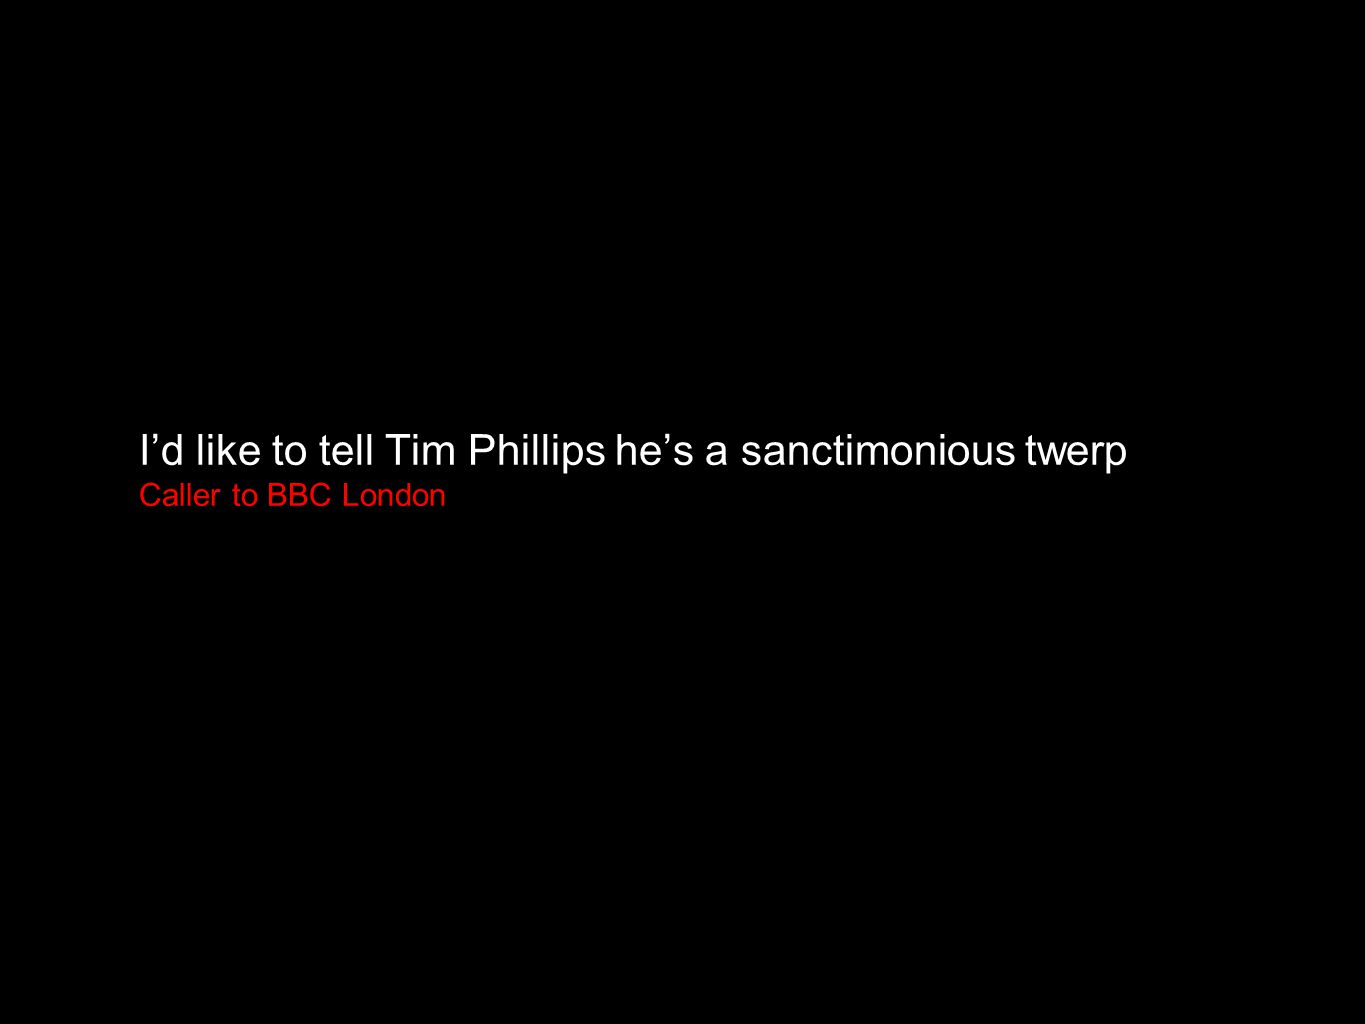 I'd like to tell Tim Phillips he's a sanctimonious twerp Caller to BBC London